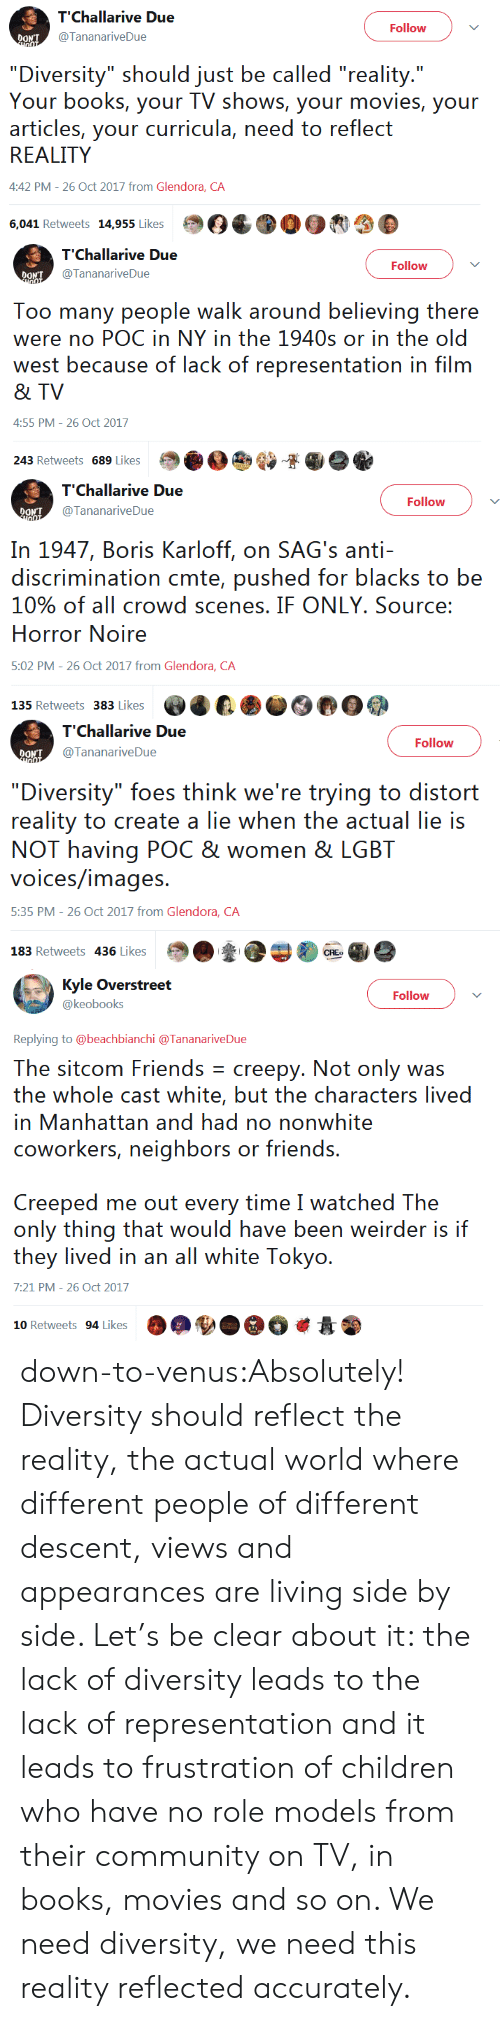 """Books, Children, and Community: Follow  OONT  @TananariveDue  """"Diversity"""" should just be called """"reality.""""  Your books, your TV shows, your movies, your  articles, your curricula, need to reflect  REALITY  4:42 PM-26 Oct 2017 from Glendora, CA  6,041 Retweets 195esOC003   T'Challarive Due  TTananariveDue  Follow  Too many people walk around believing there  were no POC in NY in the 1940s or in the old  west because of lack of representation in film  & TV  4:55 PM- 26 Oct 2017  243 Retweets 689 Likes Sie   Follow  @TananariveDue  In 1947, Boris Karloff, on SAG's anti-  discrimination cmte, pushed for blacks to be  10% of all crowd scenes, IF ONLY, Source:  Horror Noire  5:02 PM- 26 Oct 2017 from Glendora, CA   Follow  DONT  @TananariveDue  """"Diversity"""" foes think we're trying to distort  reality to create a lie when the actual lie is  NOT having POC & women & LGBT  voices/images  5:35 PM - 26 Oct 2017 from Glendora, CA  183 Retweets 436 Likes   Follow  @keobooks  Replying to @beachbianchi @TananariveDue  The sitcom Friends creepy. Not only was  the whole cast whites, buui. thee characters lived  in Manhattan and had no nonwhite  coworkers, neighbors or friends.  Creeped me out every time I watched The  only thing that would have been weirder is if  they lived in ar al whiie: Tokyo.  7:21 PM-26 Oct 2017  10 Retweets 94 LikesOA down-to-venus:Absolutely! Diversity should reflect the reality, the actual world where different people of different descent, views and appearances are living side by side. Let's be clear about it: the lack of diversity leads to the lack of representation and it leads to frustration of children who have no role models from their community on TV, in books, movies and so on. We need diversity, we need this reality reflected accurately."""